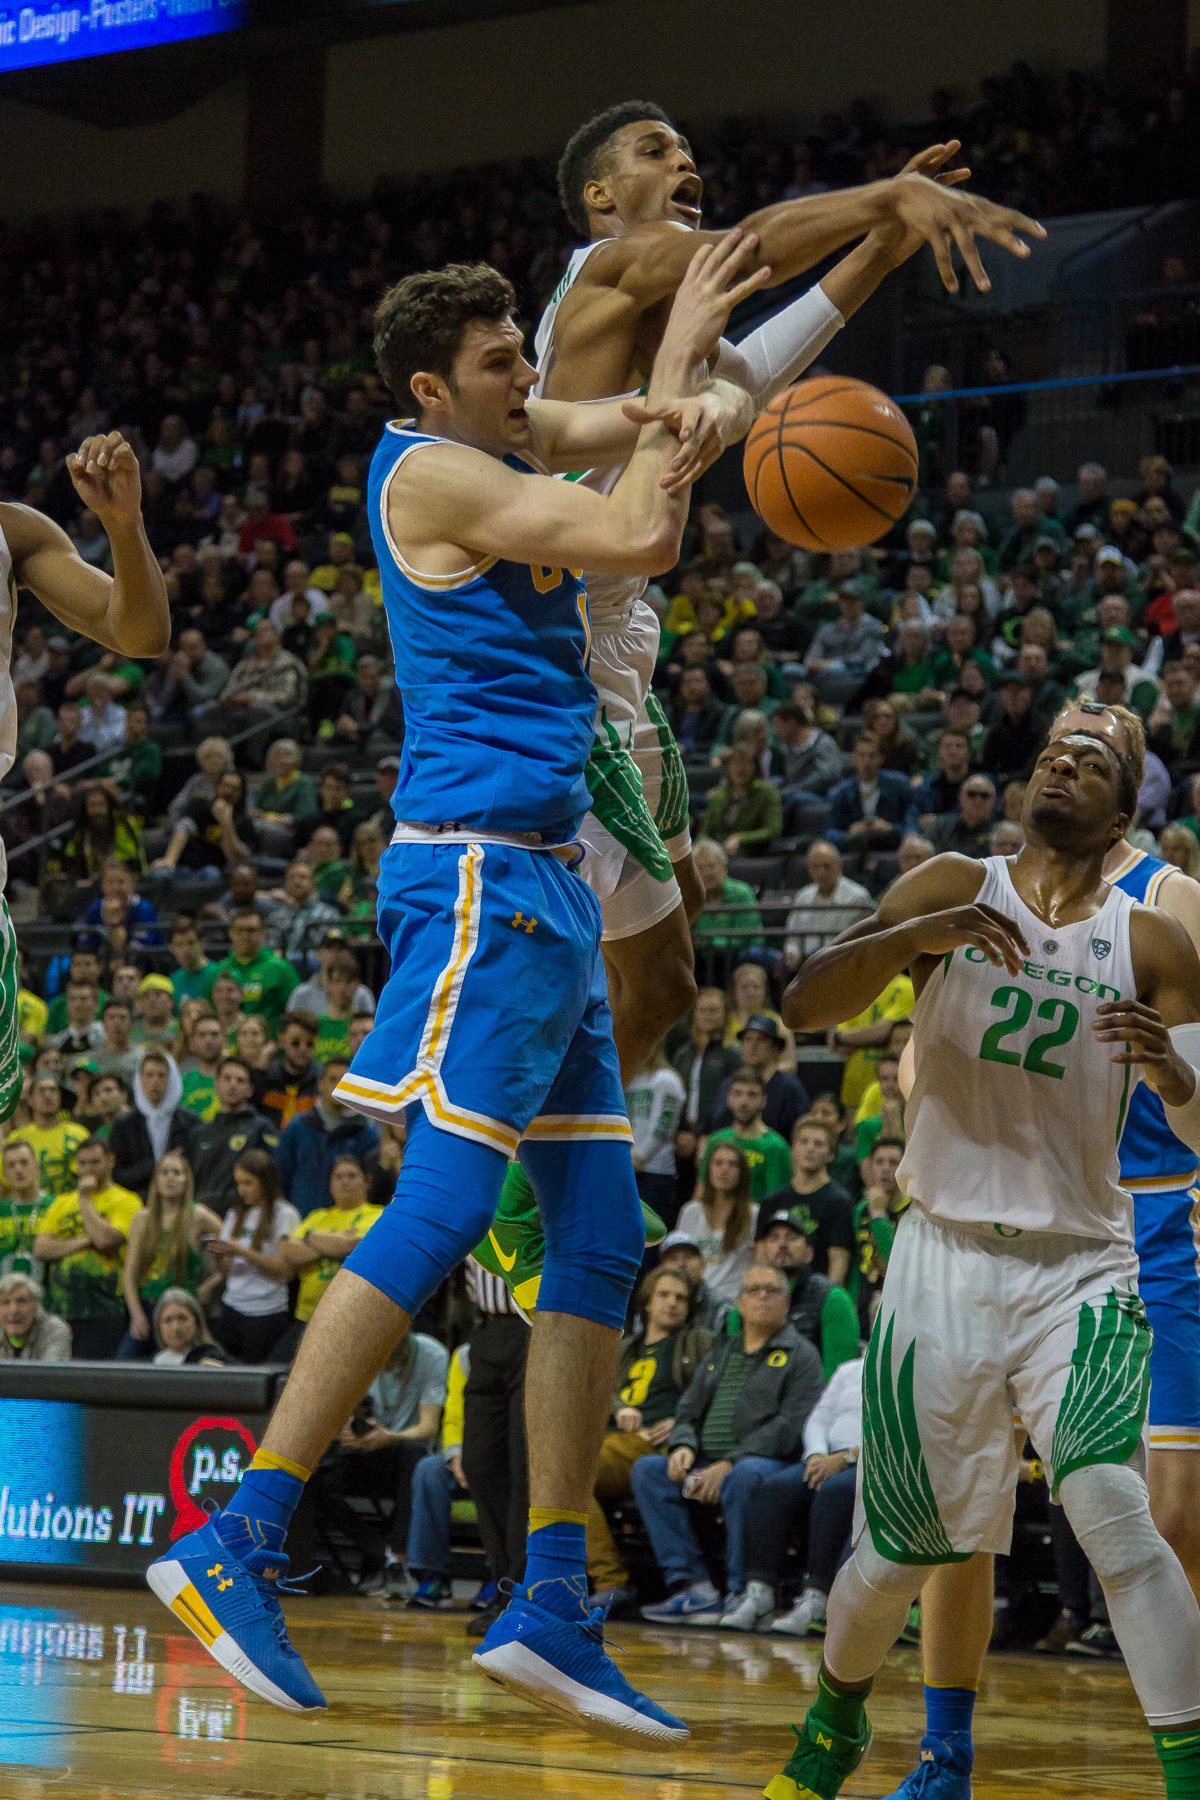 Oregon forward Kenny Wooten (#1) blocks UCLA forward Gyorgy Goloman (#14). The Oregon Ducks men's basketball team defeated the UCLA Bruins 94-91 Saturday night in front of a home crowd at Matthew Knight Arena. The win brings the Ducks 13-7 overall for the season and 3-4 in Pac-12 play. Photo by Dillon Vibes